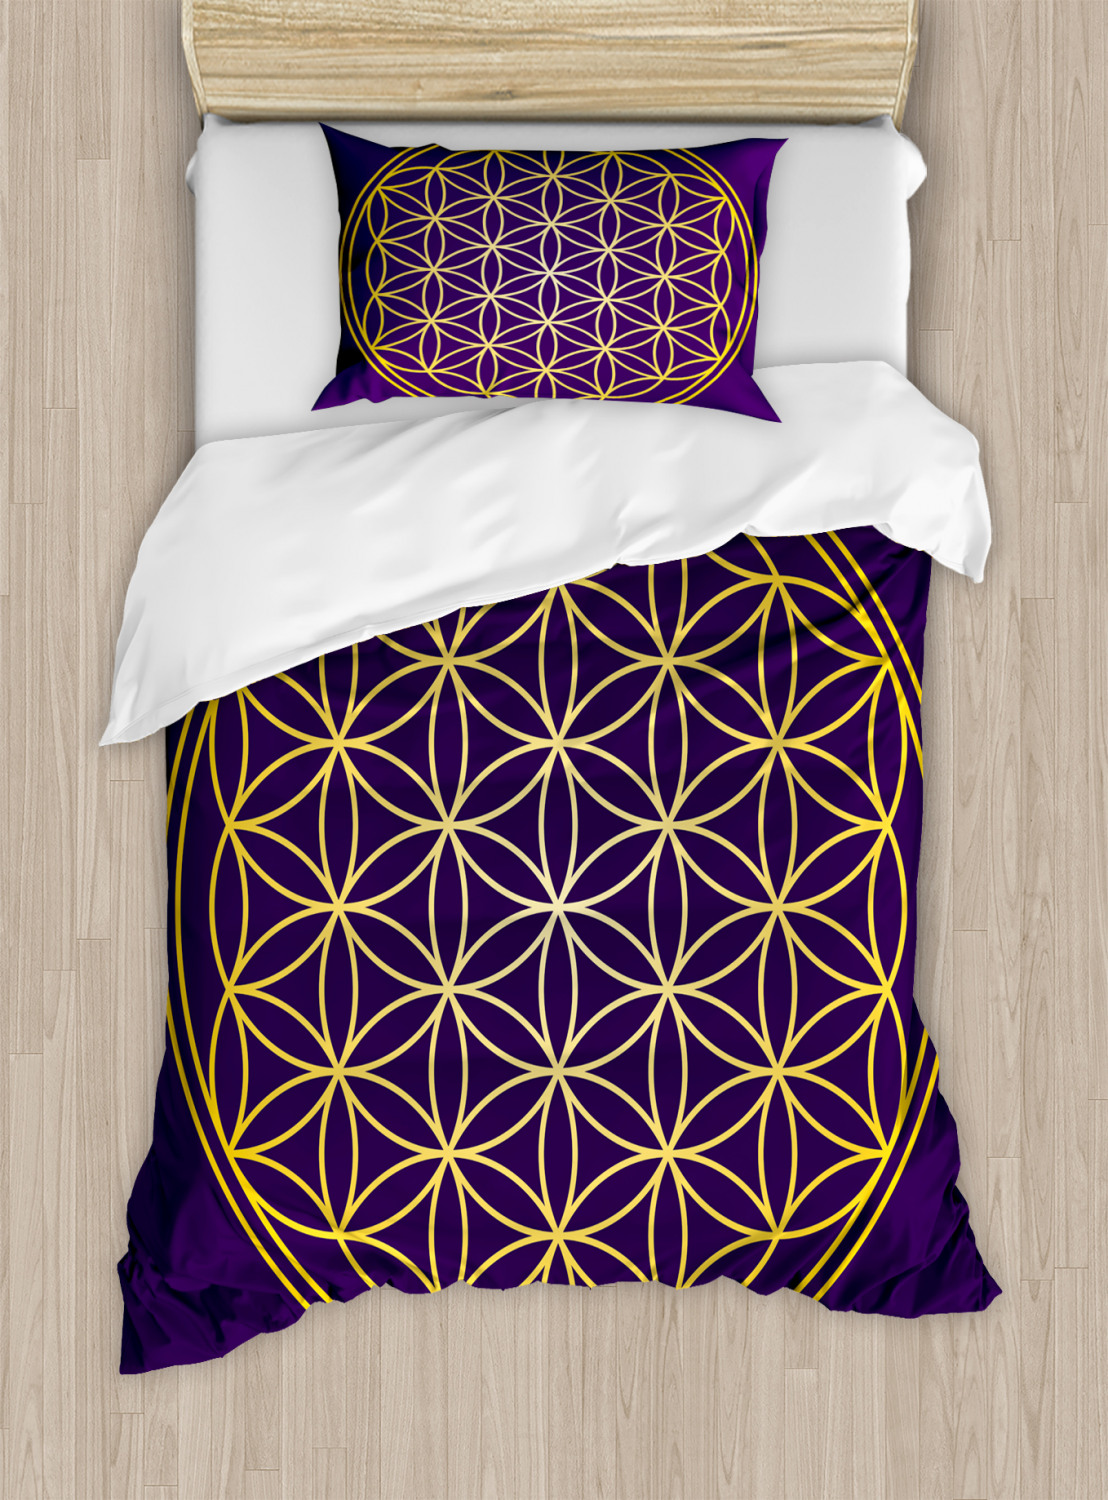 Flower-of-Life-Duvet-Cover-Set-Twin-Queen-King-Sizes-with-Pillow-Shams thumbnail 40